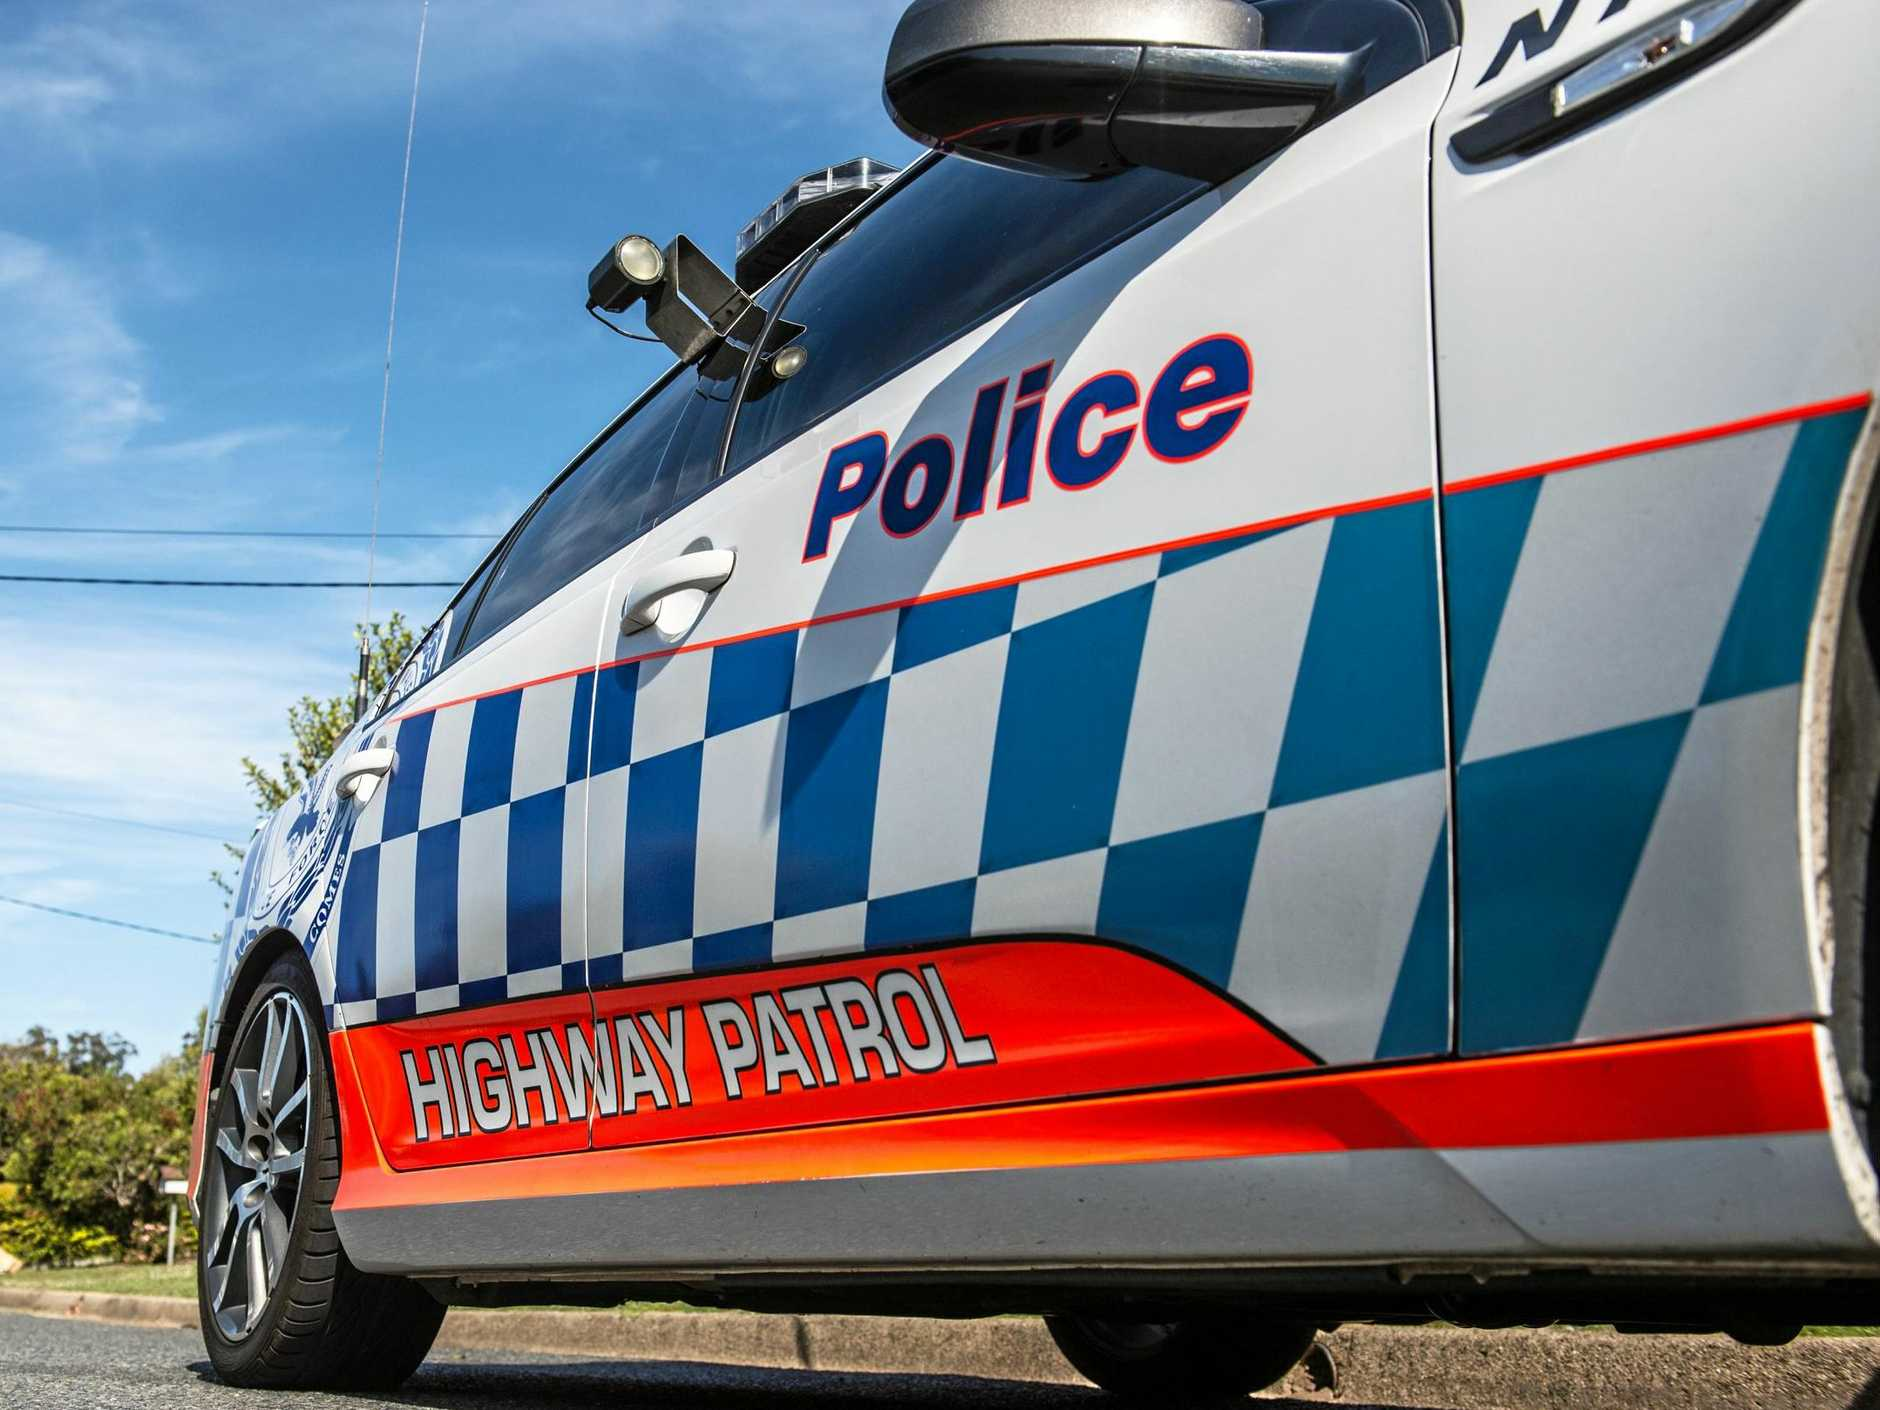 A man who allegedly engaged in a pursuit with police before his car left the road and crashed into a tree has died.